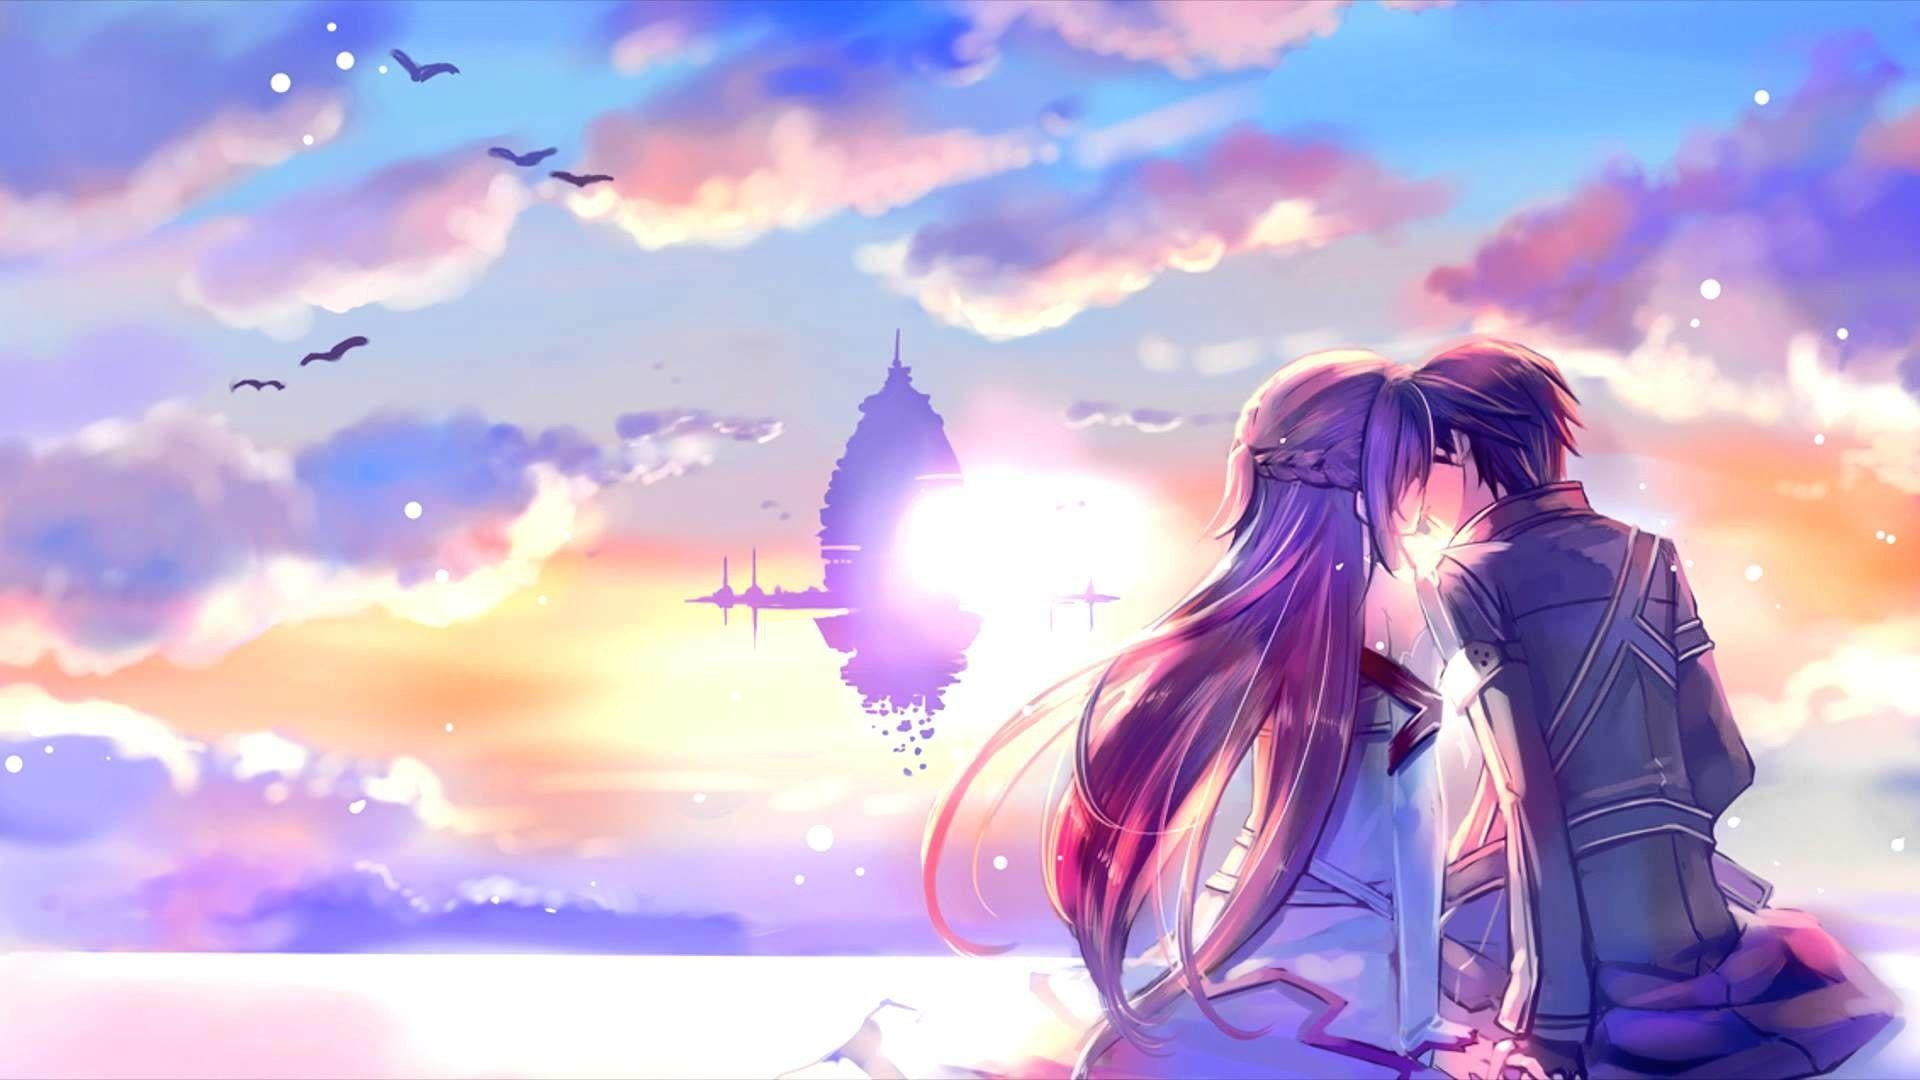 Anime Love Wallpapers Hd Wallpaper Cave